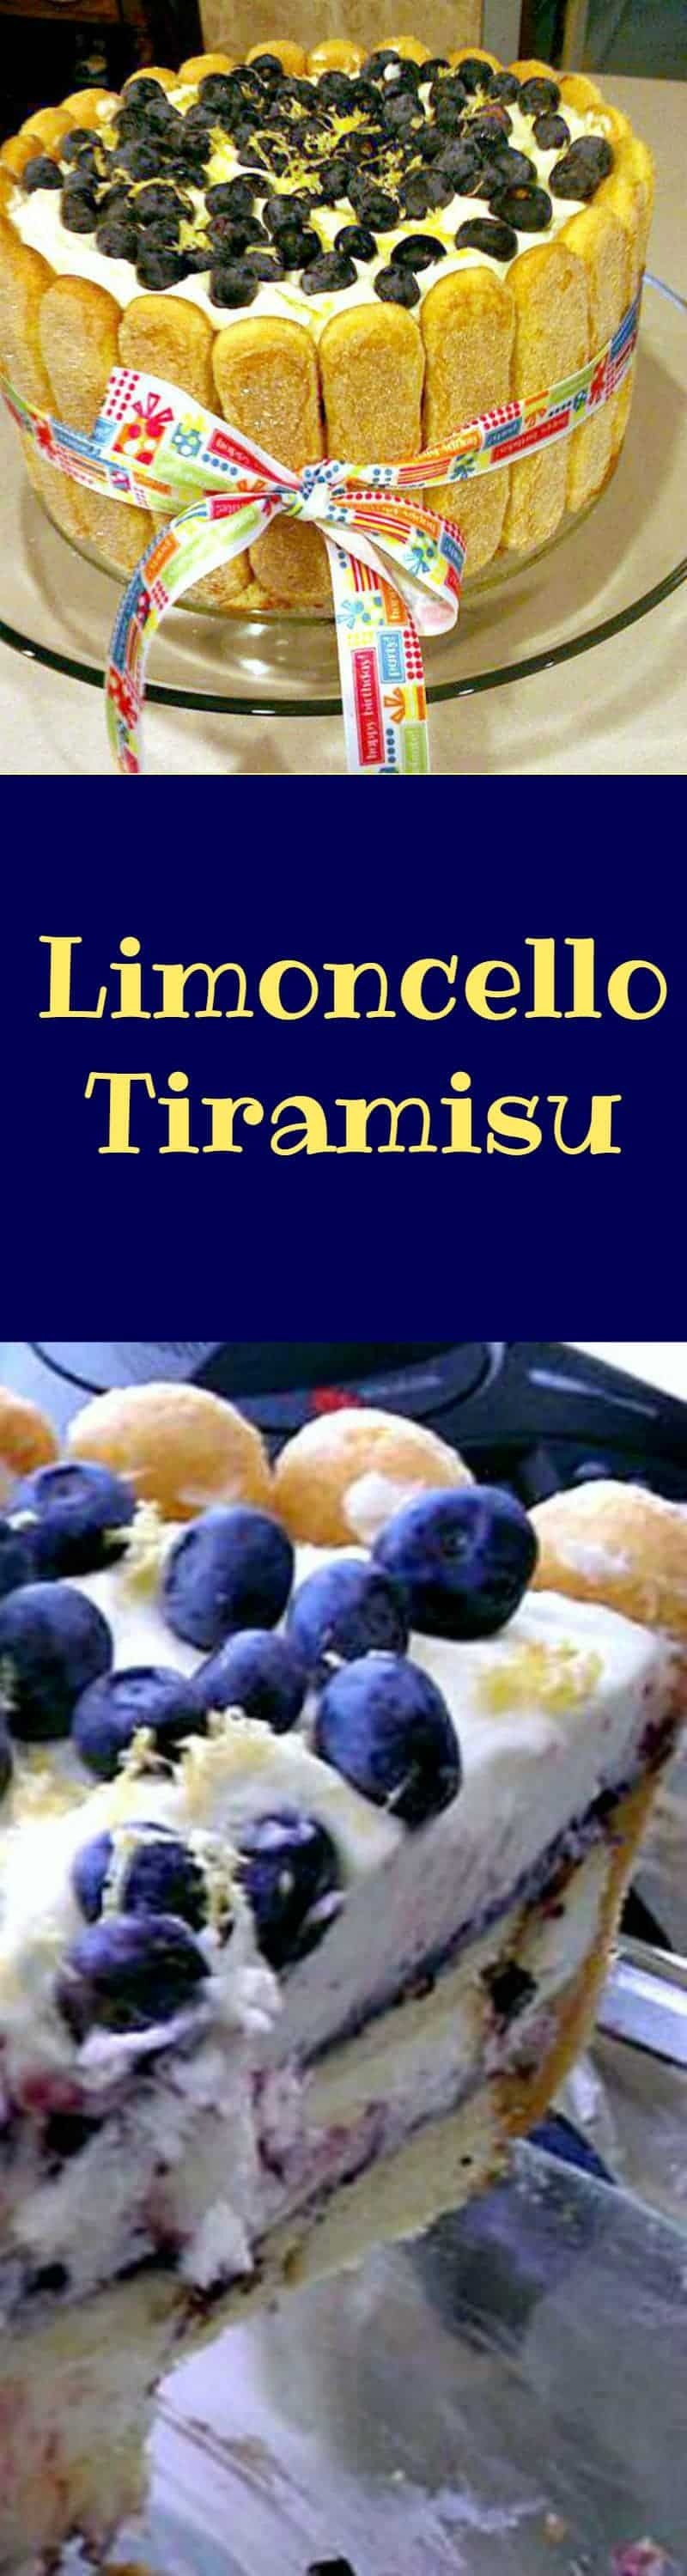 Limoncello Tiramisu. Come and see the wonderful flavors in this dessert and it's sure to make you smile! A great alternative to the famous coffee flavored tiramisu. Make as a sheet pan or round, you decide!